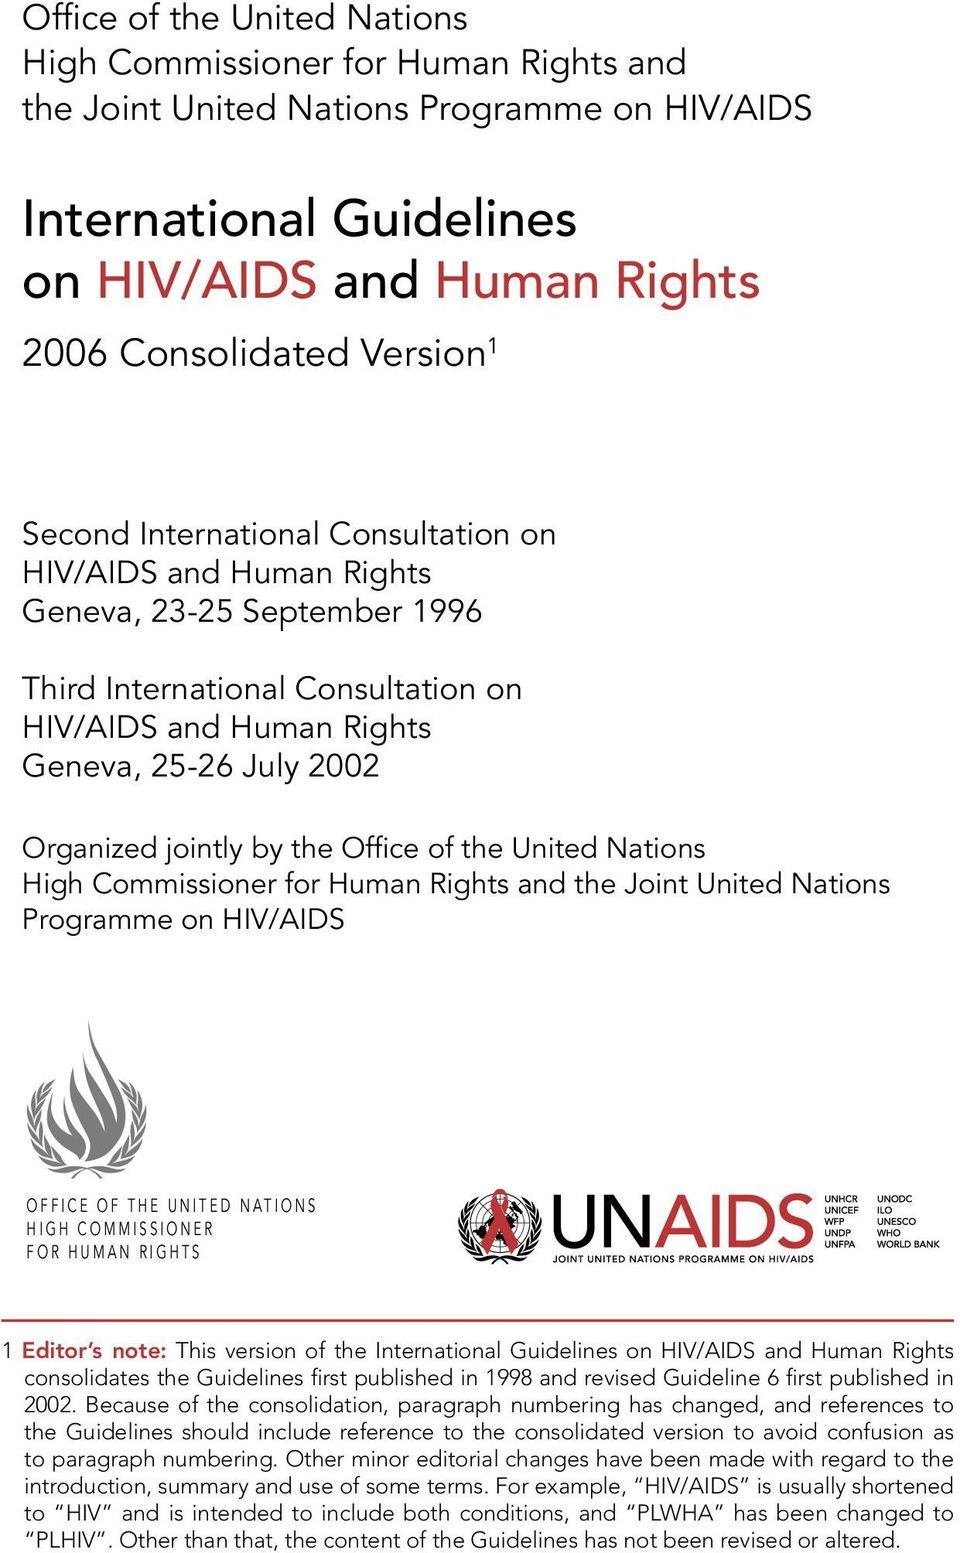 the Office of the United Nations High Commissioner for Human Rights and the Joint United Nations Programme on HIV/AIDS O F F I C E O F T H E U N I T E D N A T I O N S H I G H C O M M I S S I O N E R